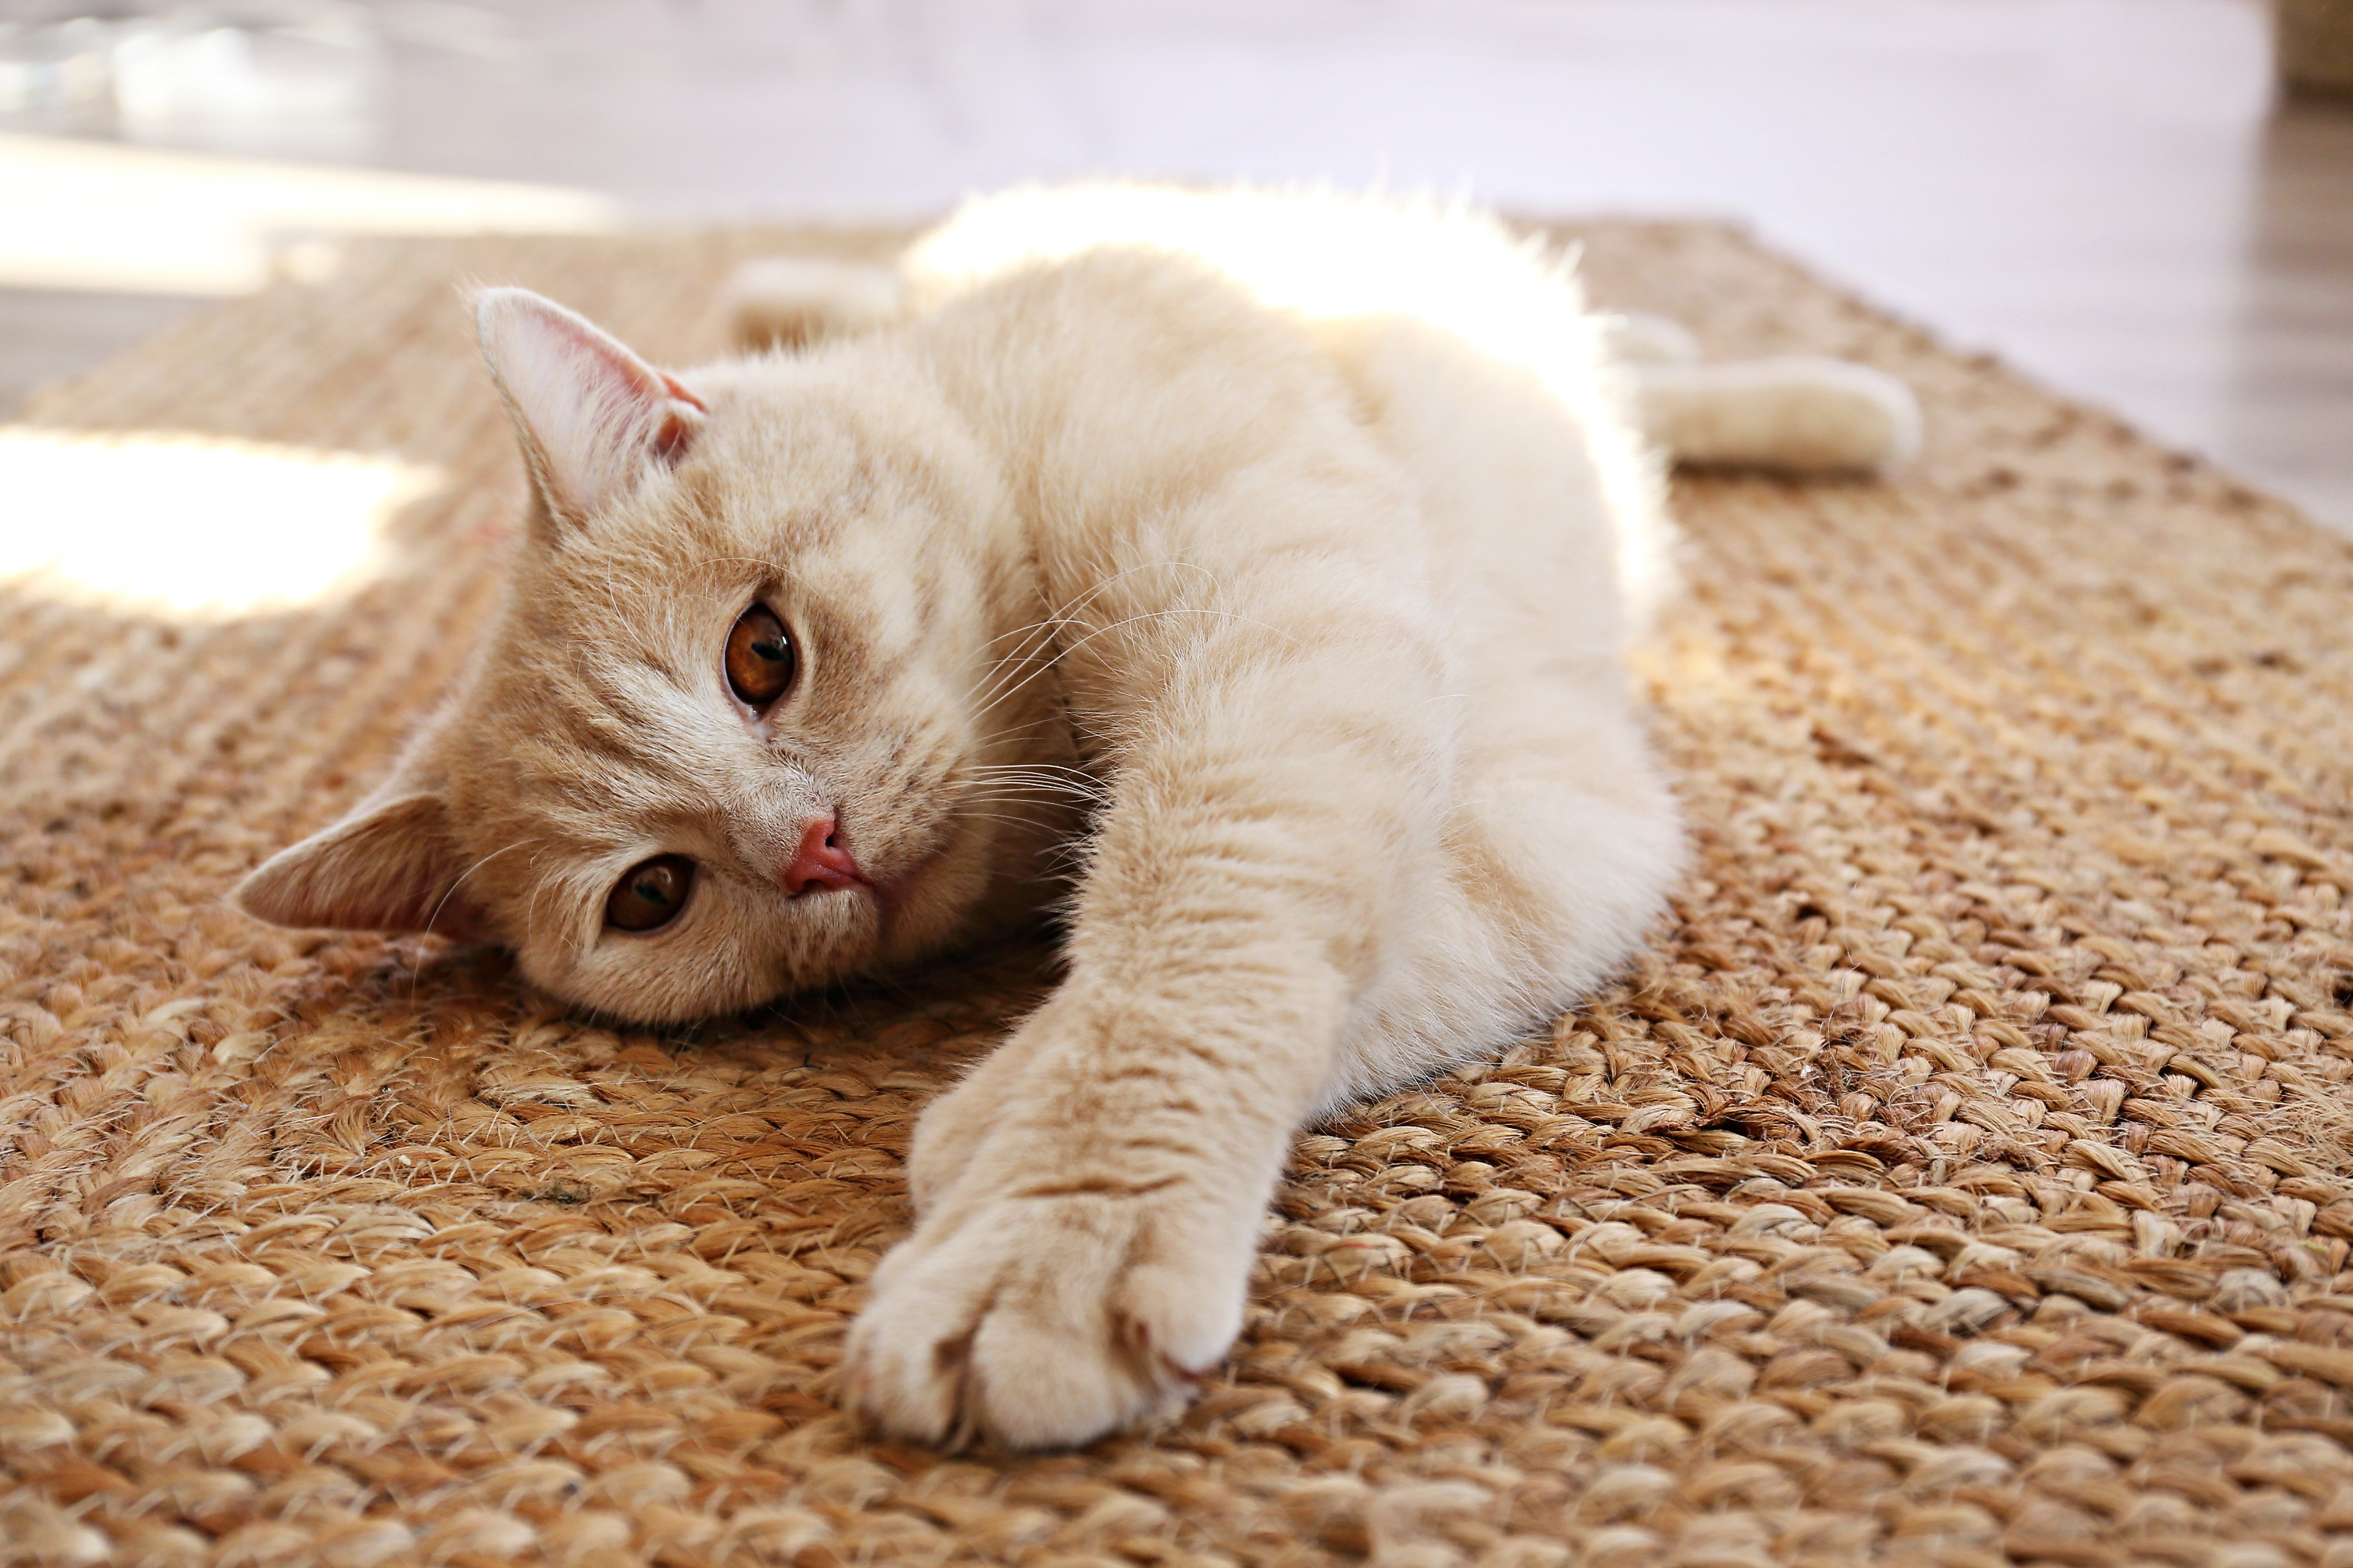 A light orange cat lays on a brown textured rug in the interior of a home.